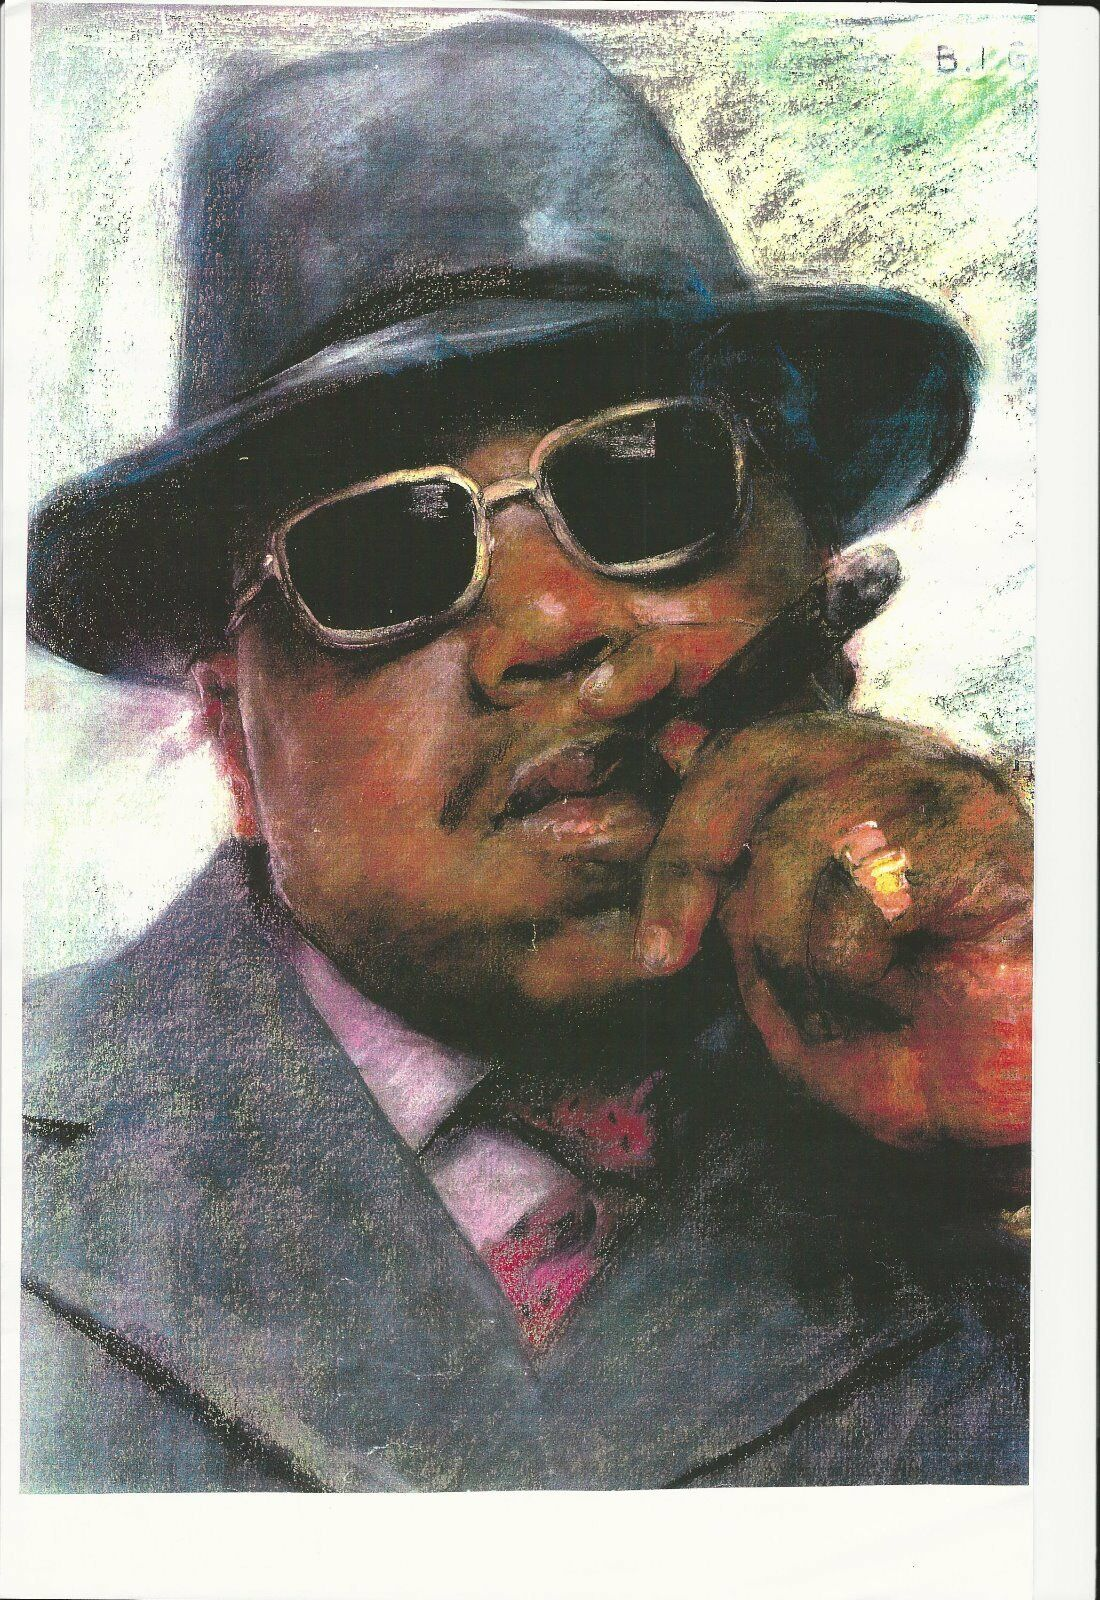 Biggie big great rapper 11 x 17 color high gloss poster collectors item